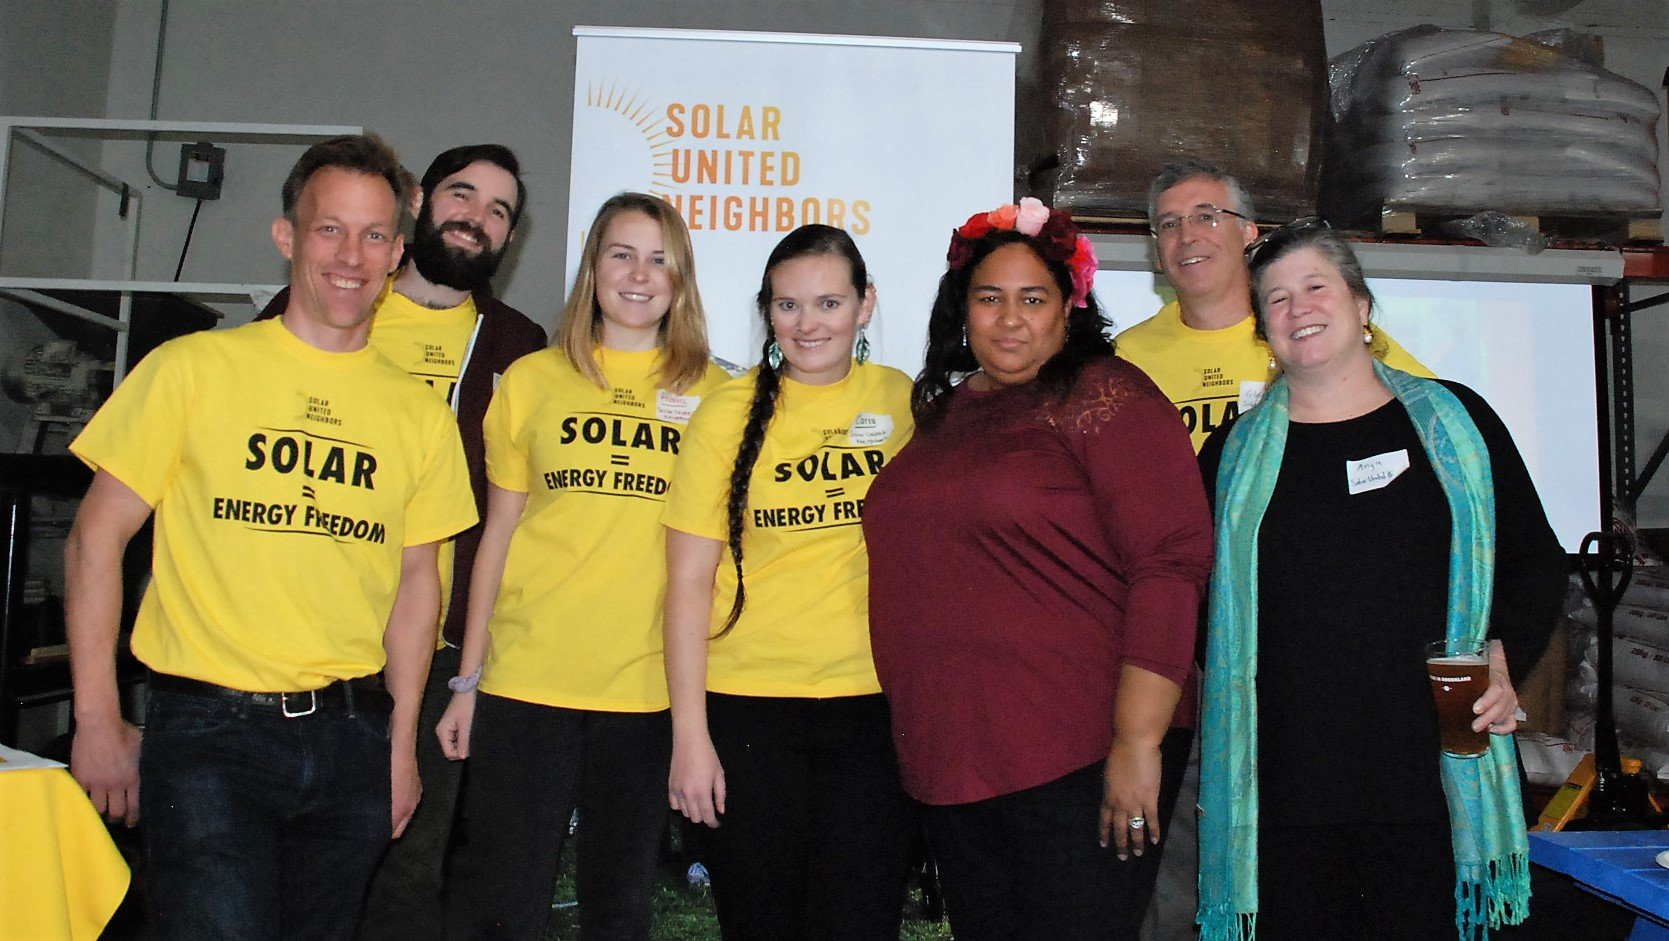 The Solar United Neighbors team at the 2017 D.C. Solar Celebration